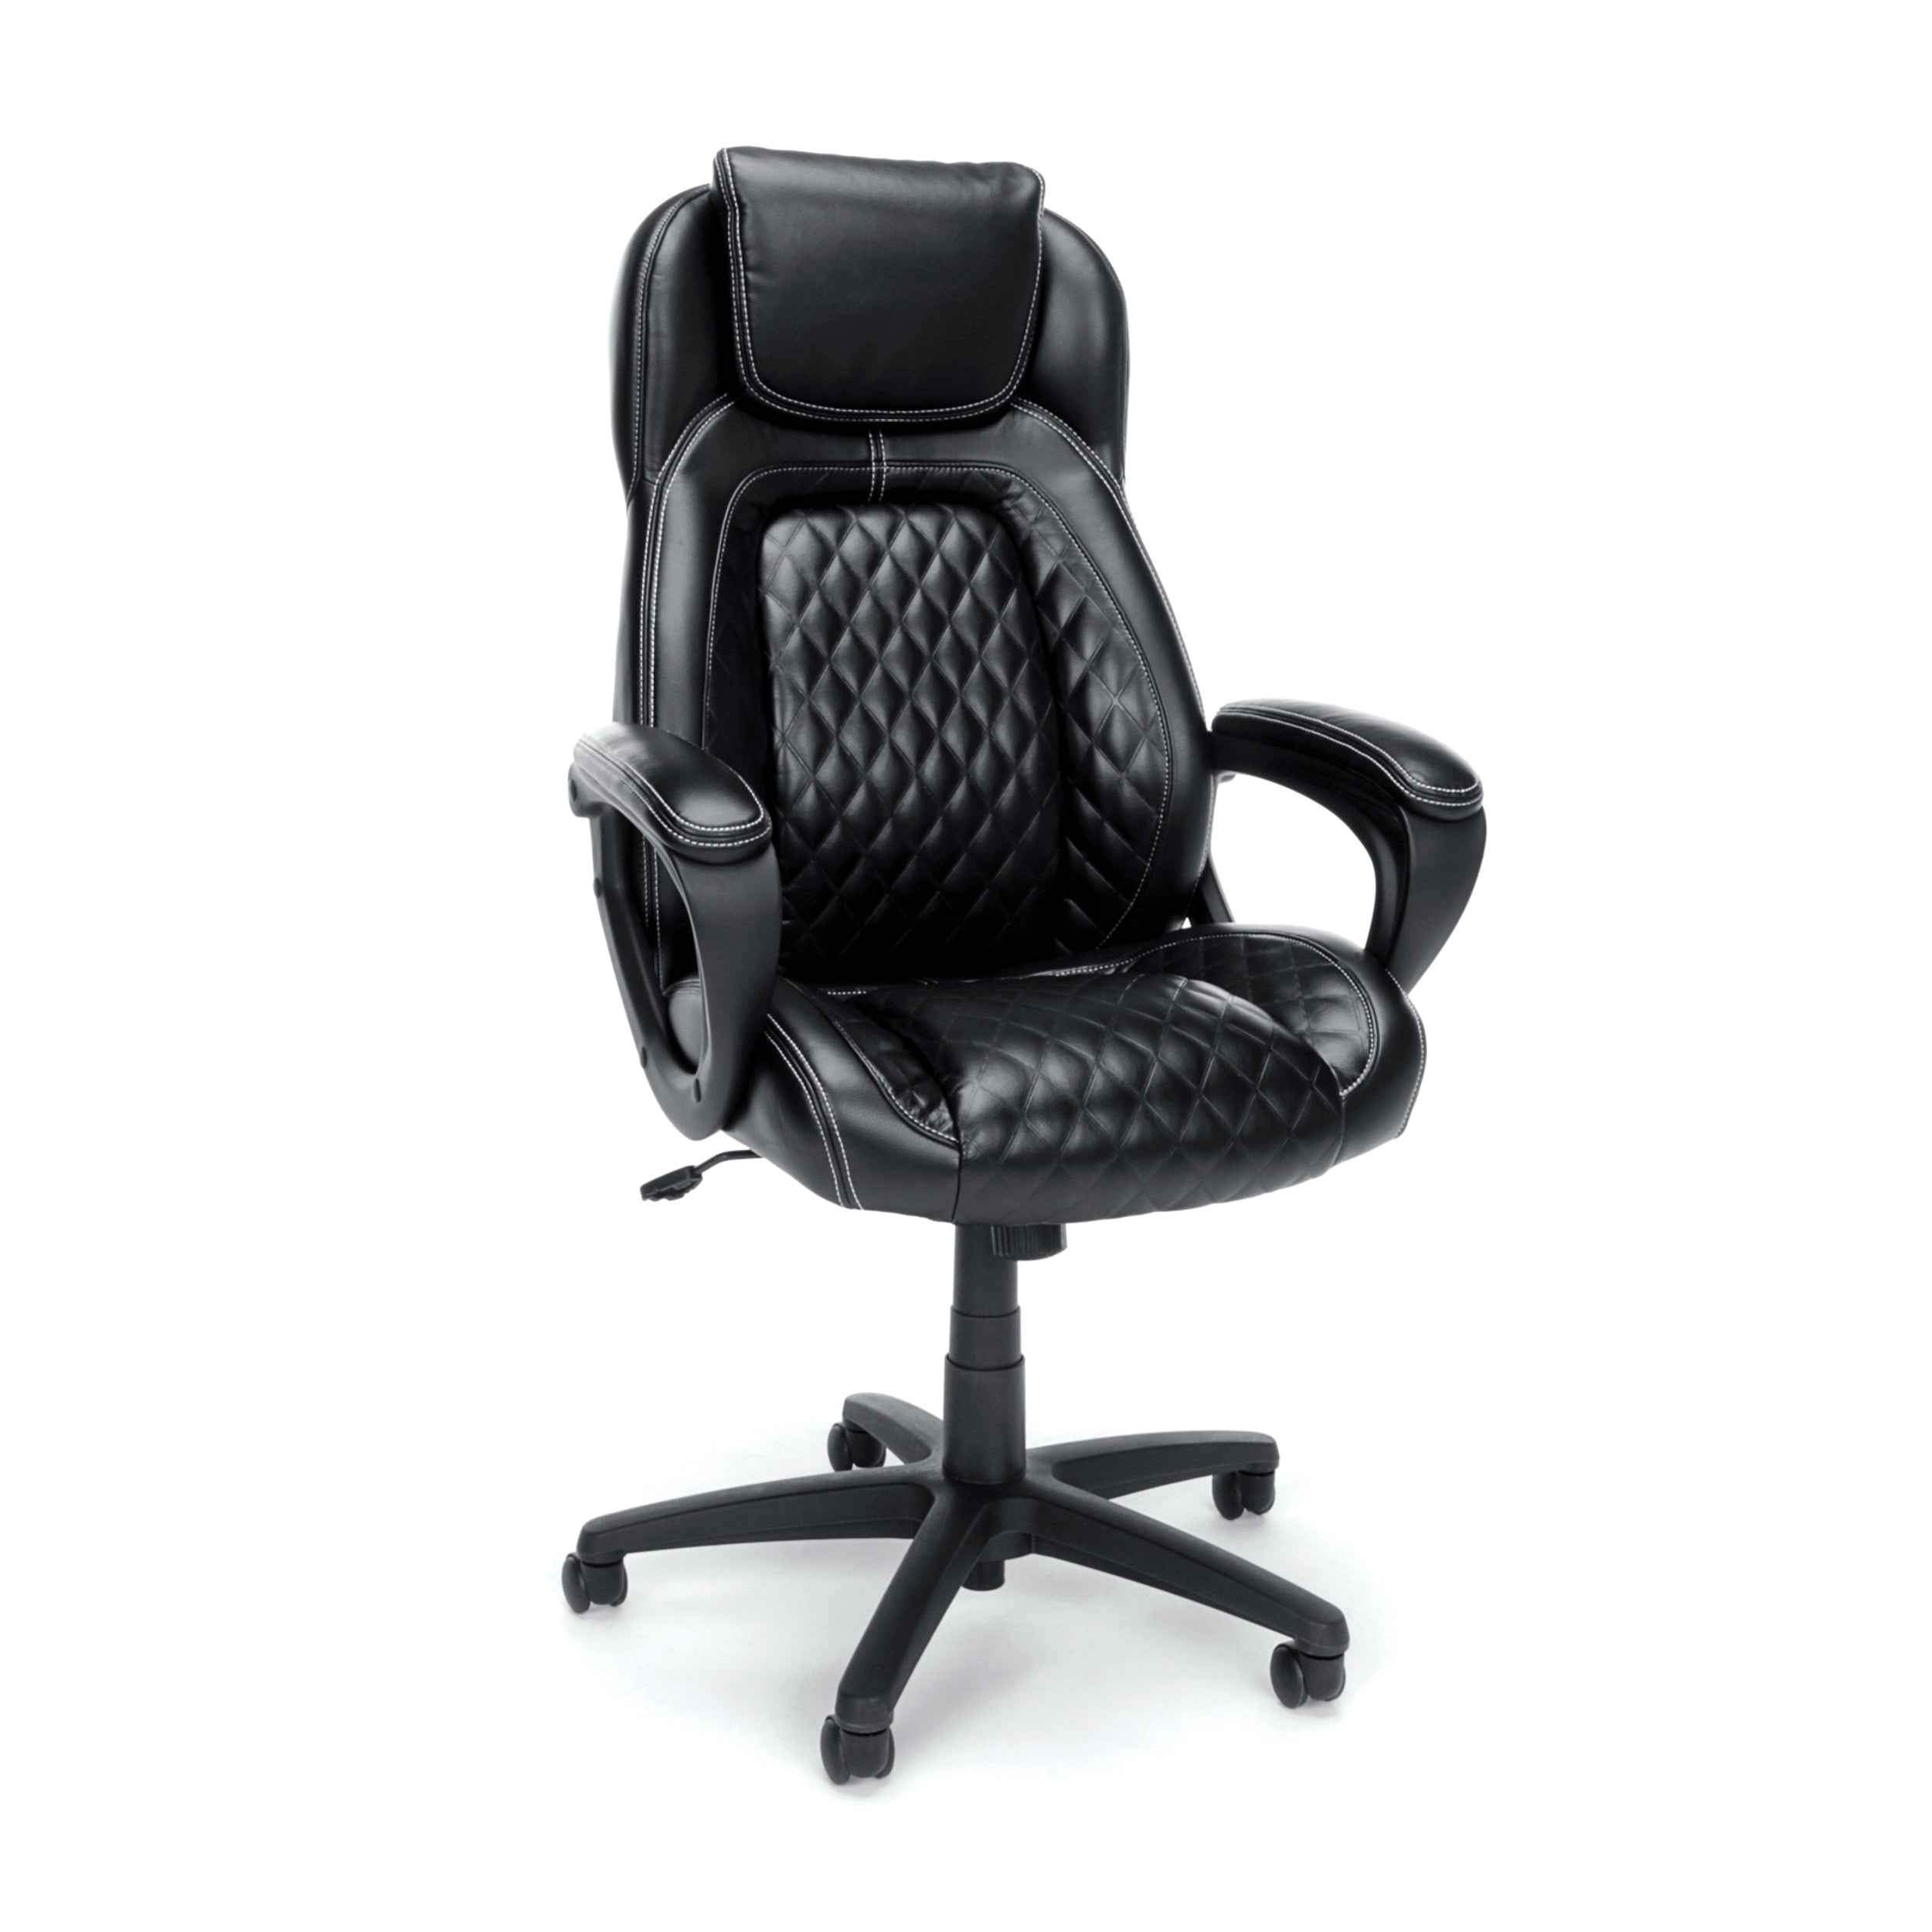 Model ESS-6060 Essentials by OFM Racing Style Leather Office Chair